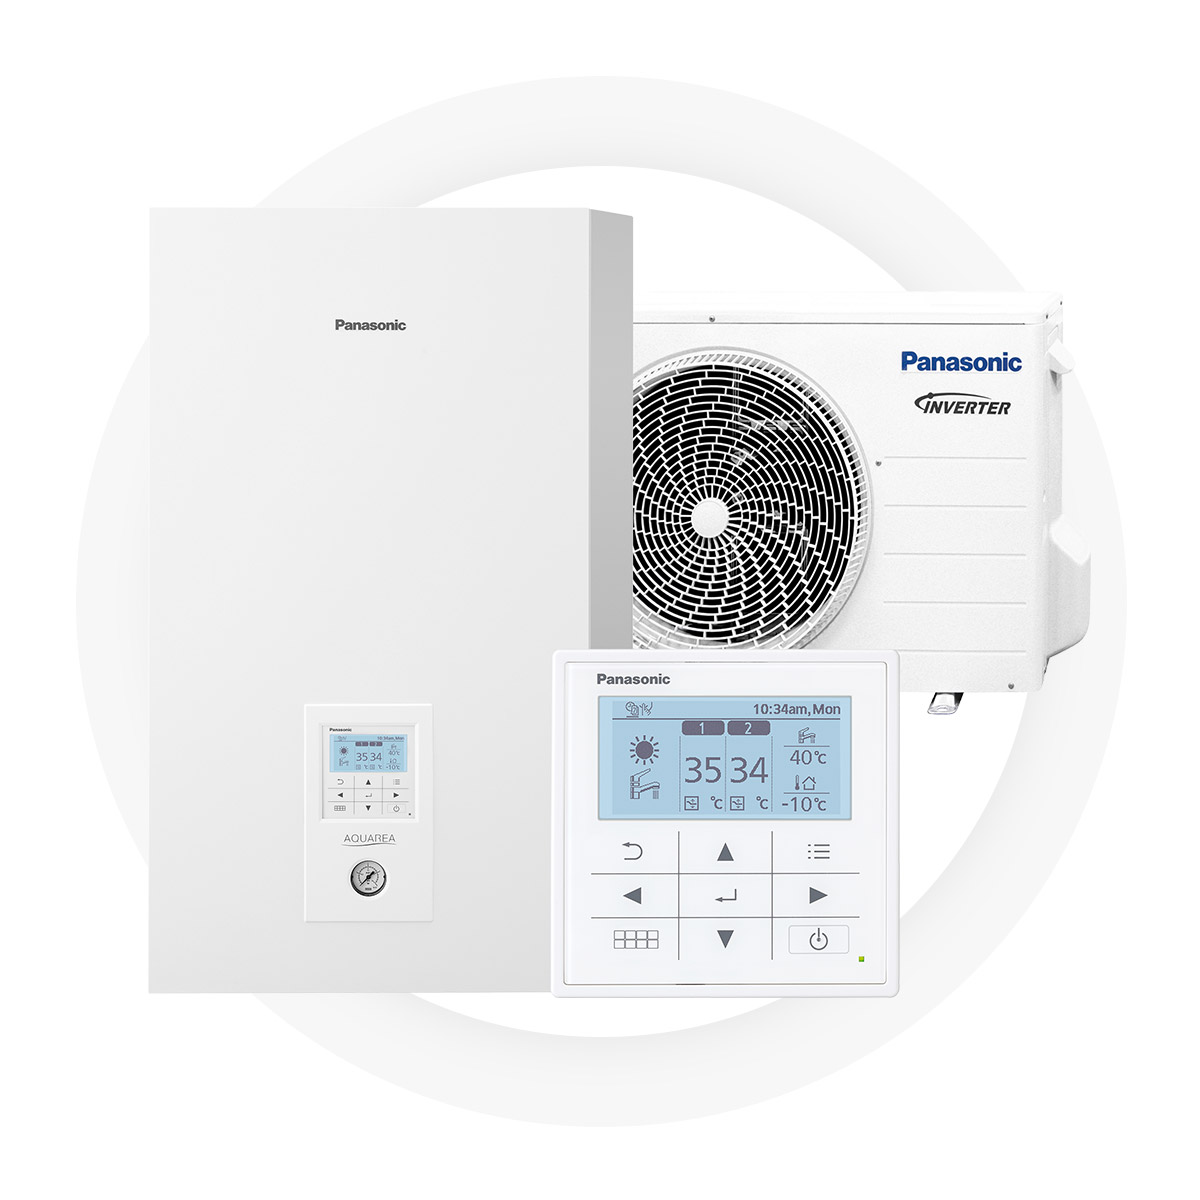 Panasonic t-cap - Significant savings on energy bills – up to 78% less100% efficiency even at -20°C ambient temperaturePossible to integrate to an existing heating systemCreated for Nordic climate and tested at -27°C5-year full factory warranty by Panasonic